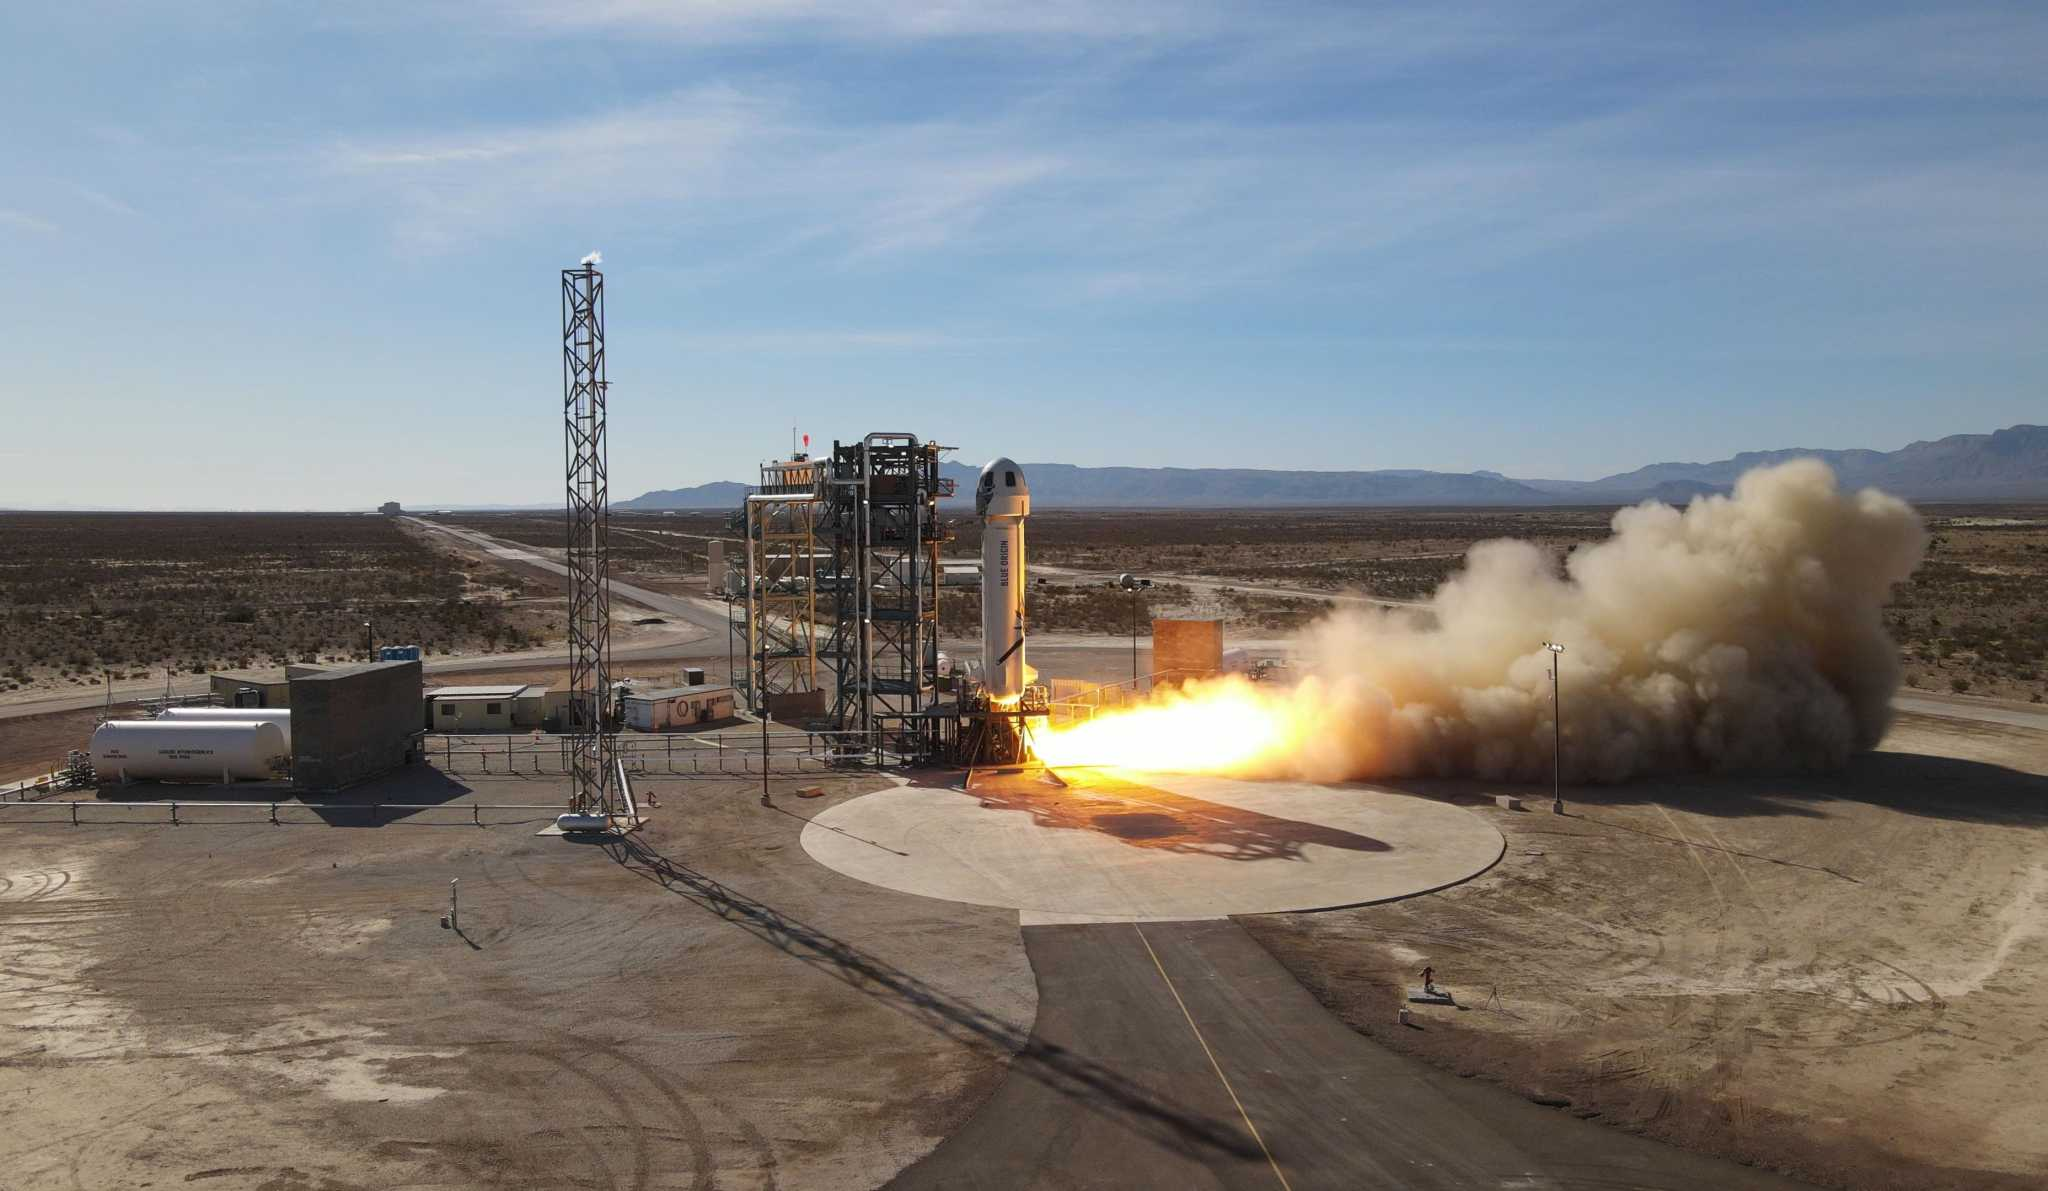 Blue Origin gets crew dress rehearsal before launch from West Texas